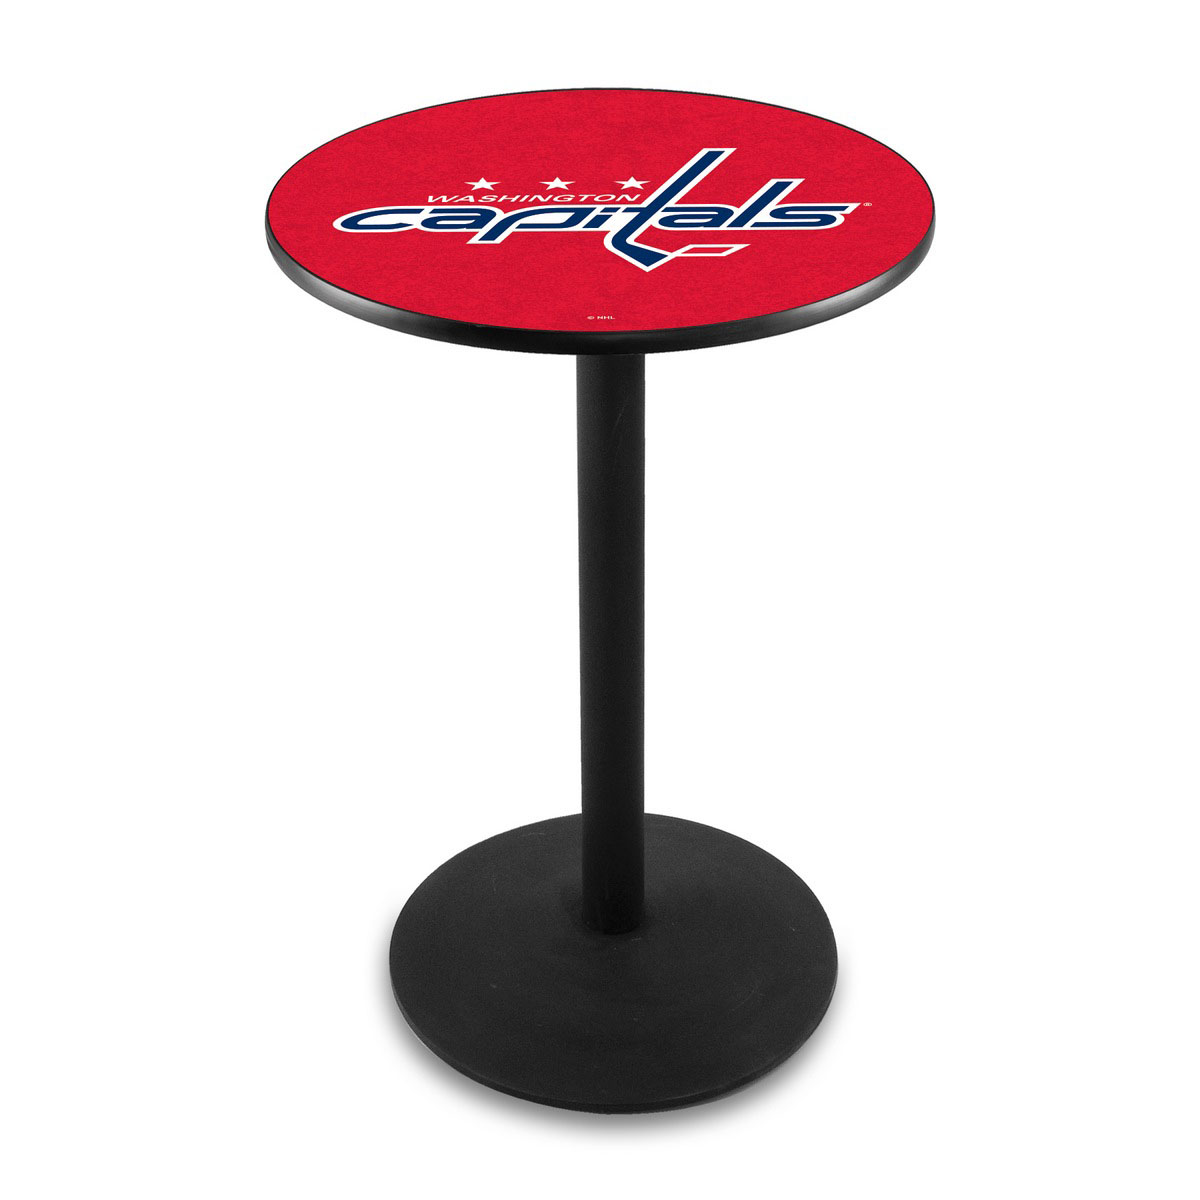 Lovable Washington Capitals Logo Pub Bar Table Round Stand Product Photo